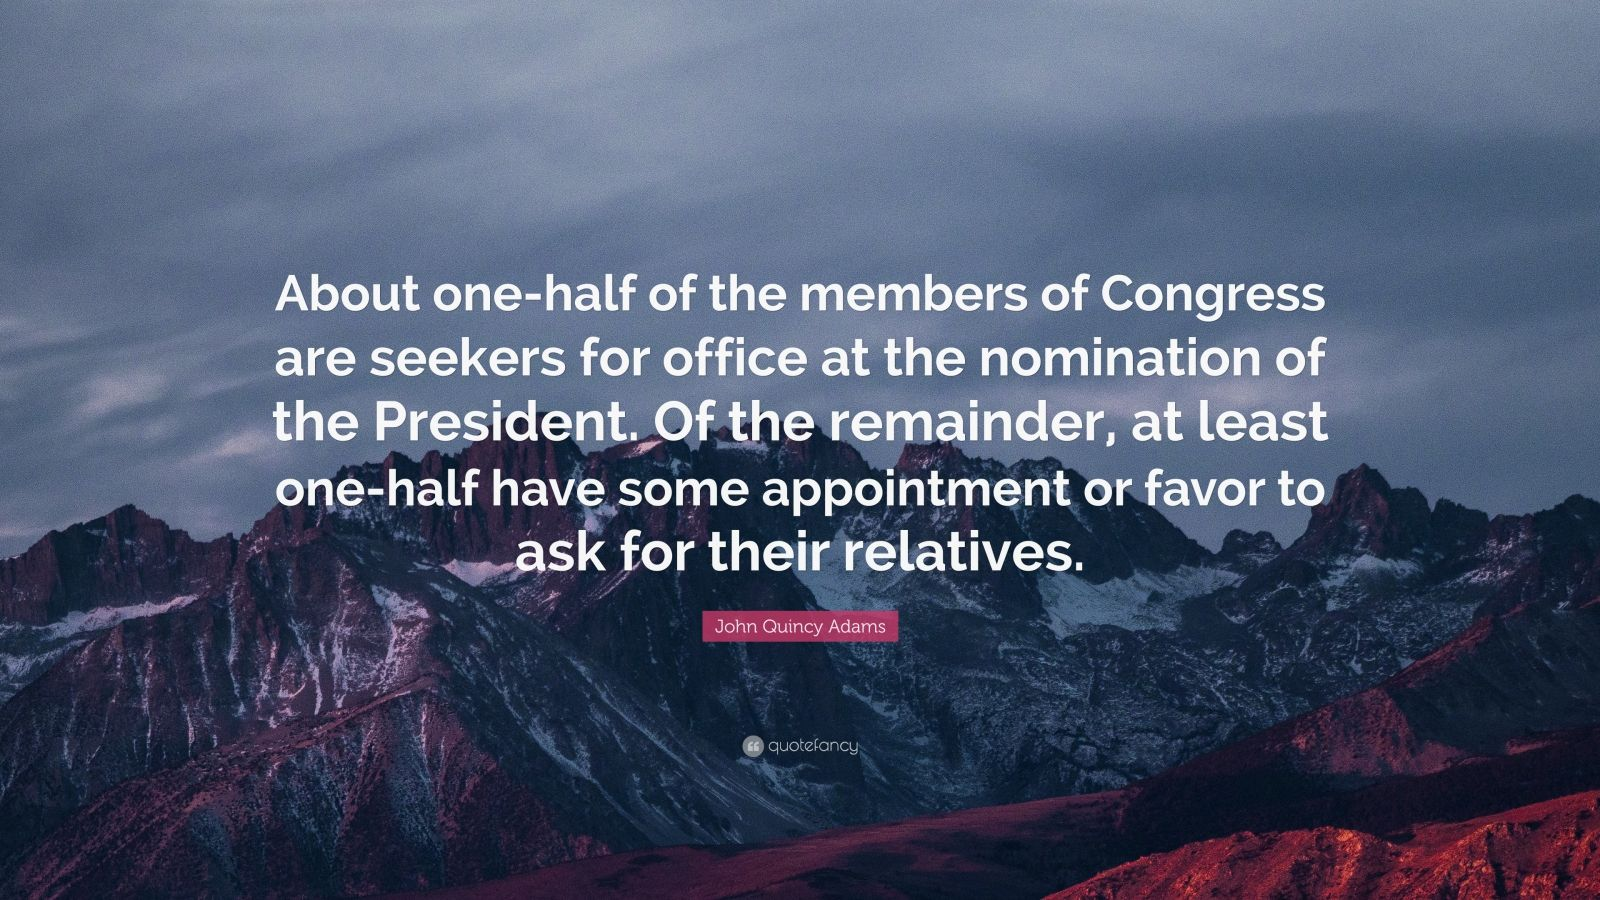 """John Quincy Adams Quote: """"About one-half of the members of Congress are seekers for office at the nomination of the President. Of the remainder, at least one-half have some appointment or favor to ask for their relatives."""""""